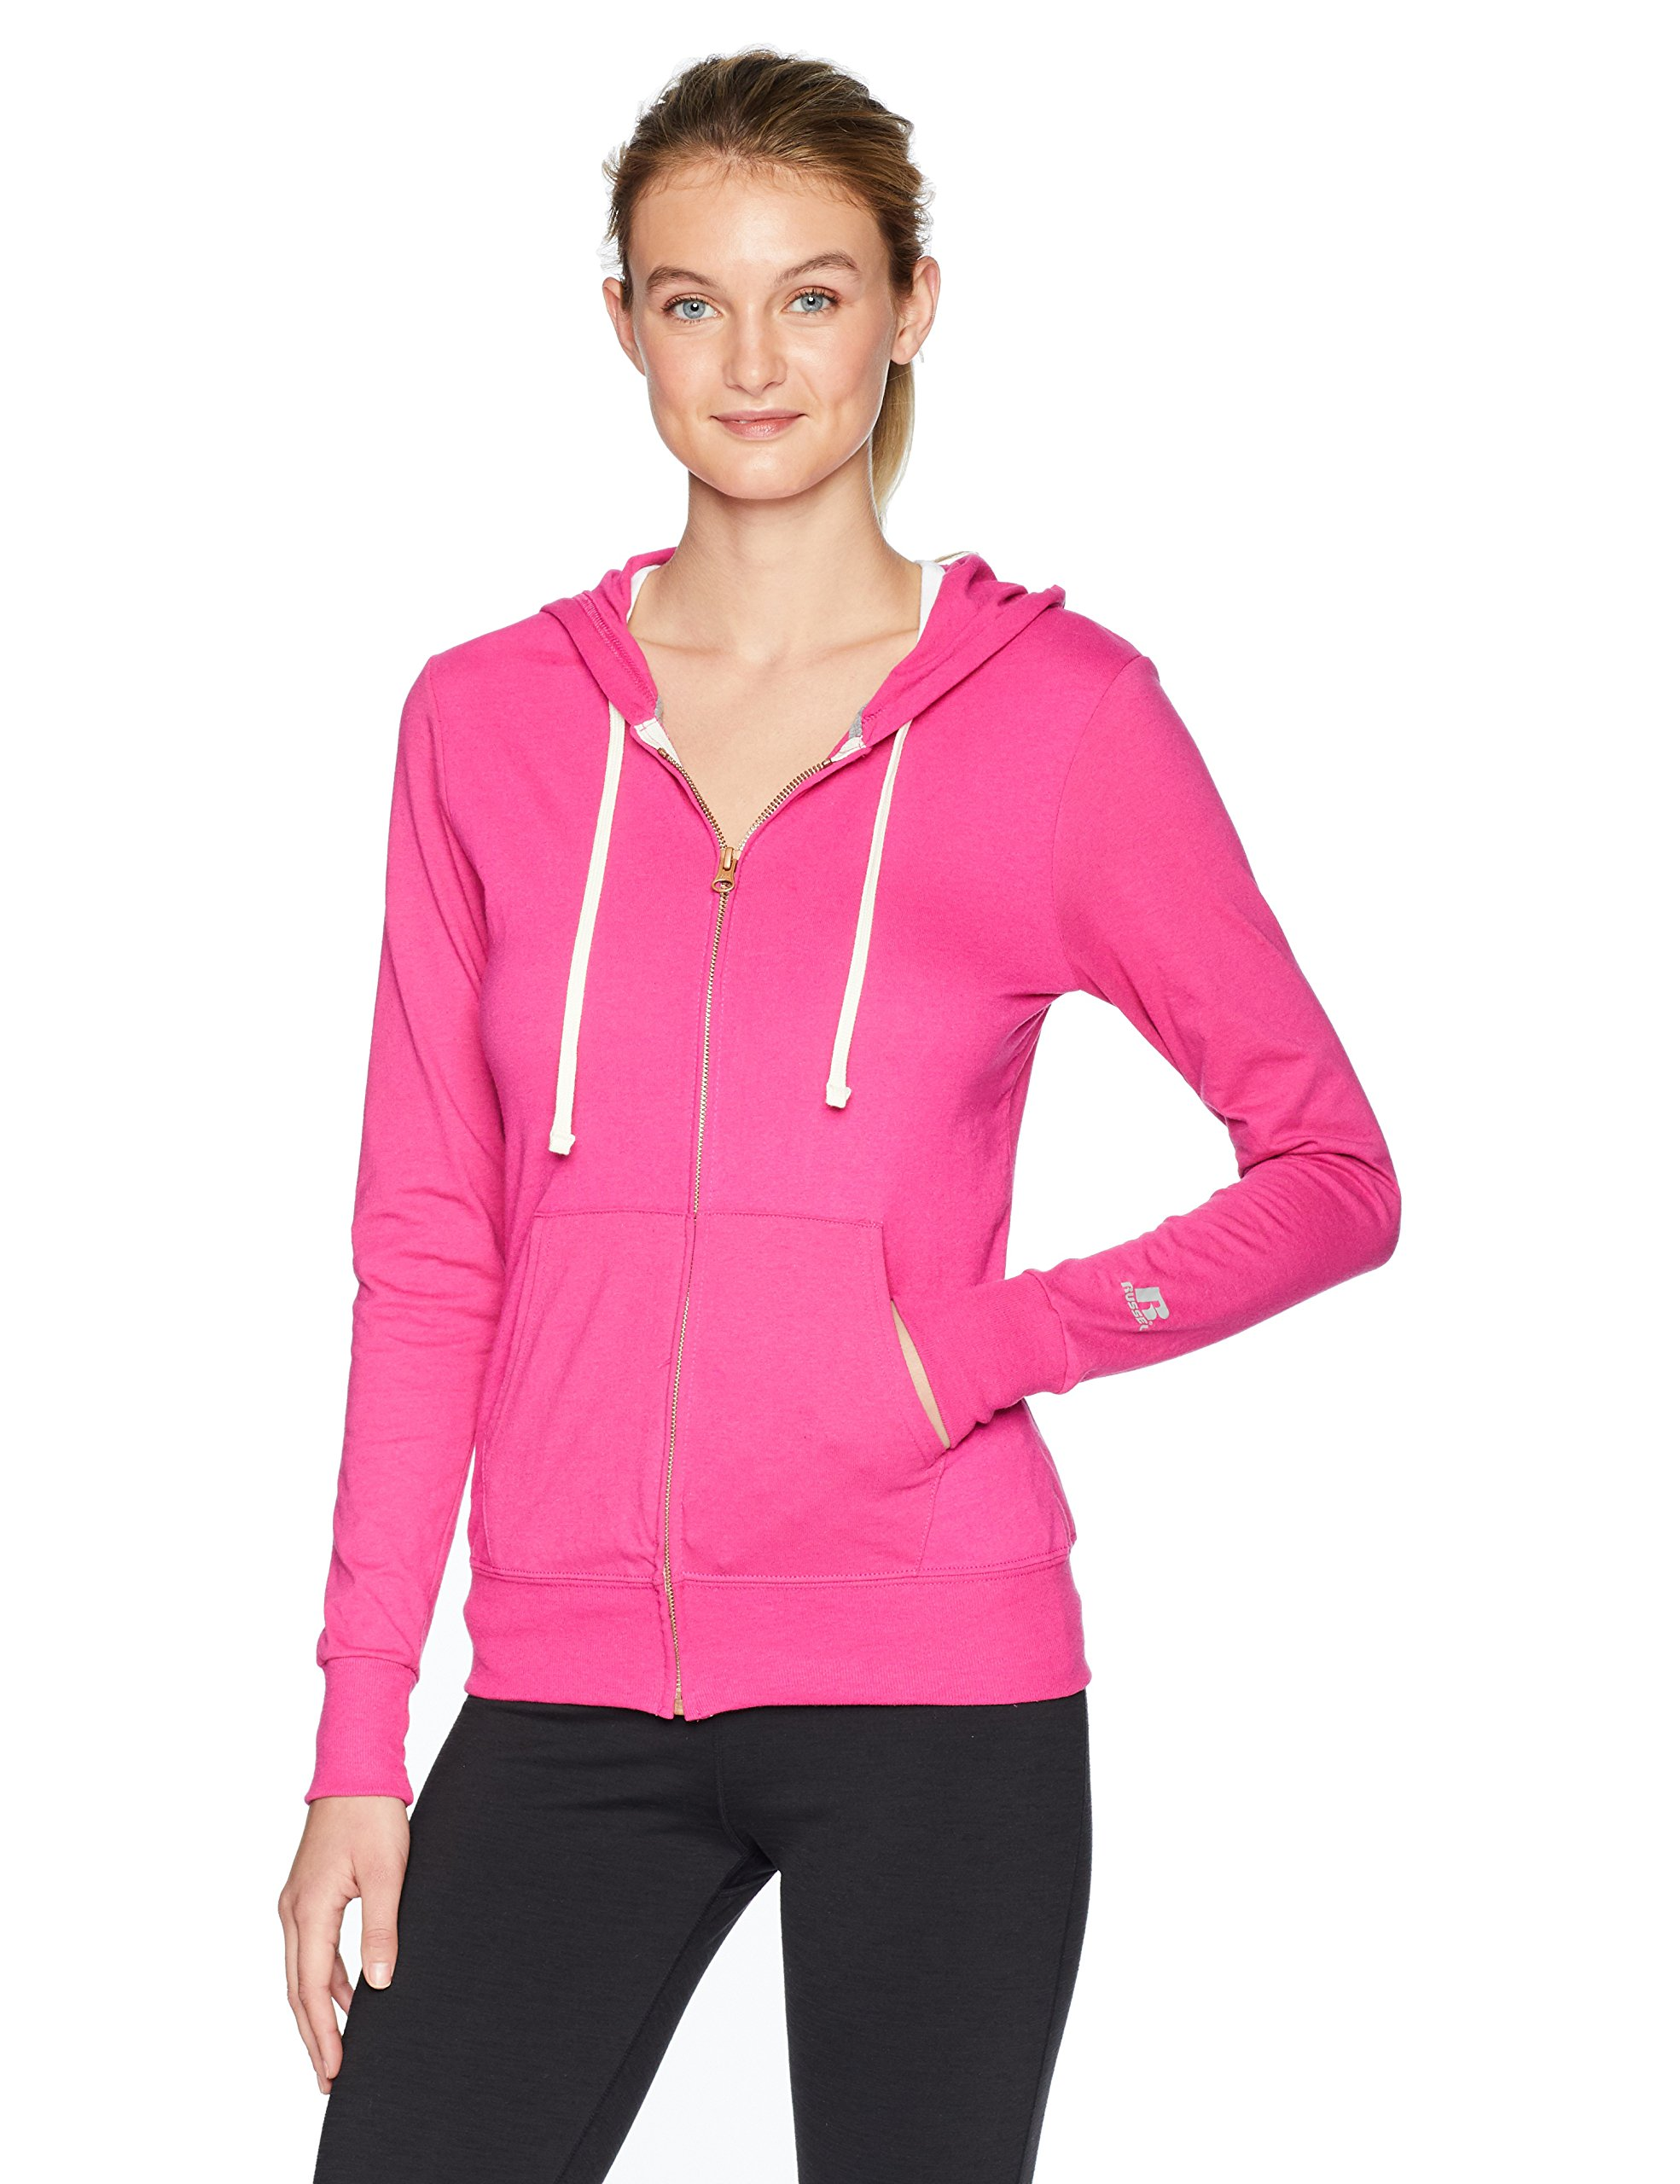 Russell Athletic Women's Essential Full Zip Jacket, Very Berry, Large by Russell Athletic